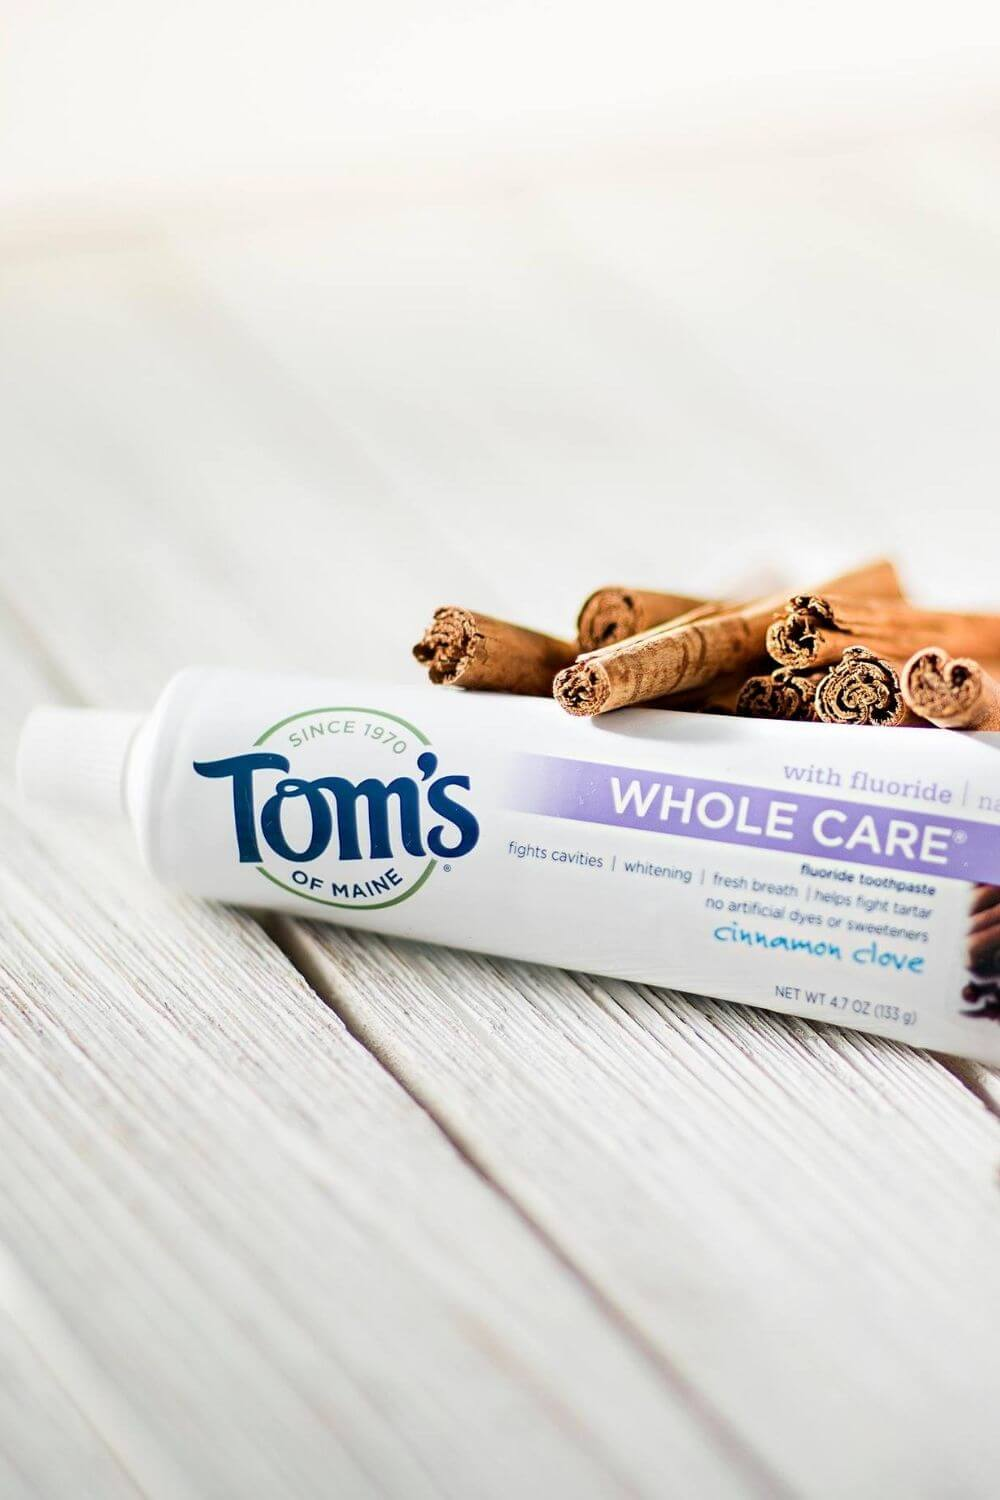 Toothpaste is probably the most regularly used body care product around which is why it was one of the first products we scrutinized for sustainable, cruelty free toothpaste alternatives... Image by Tom's Of Maine #crueltyfreetoothpaste #sustainablejungle